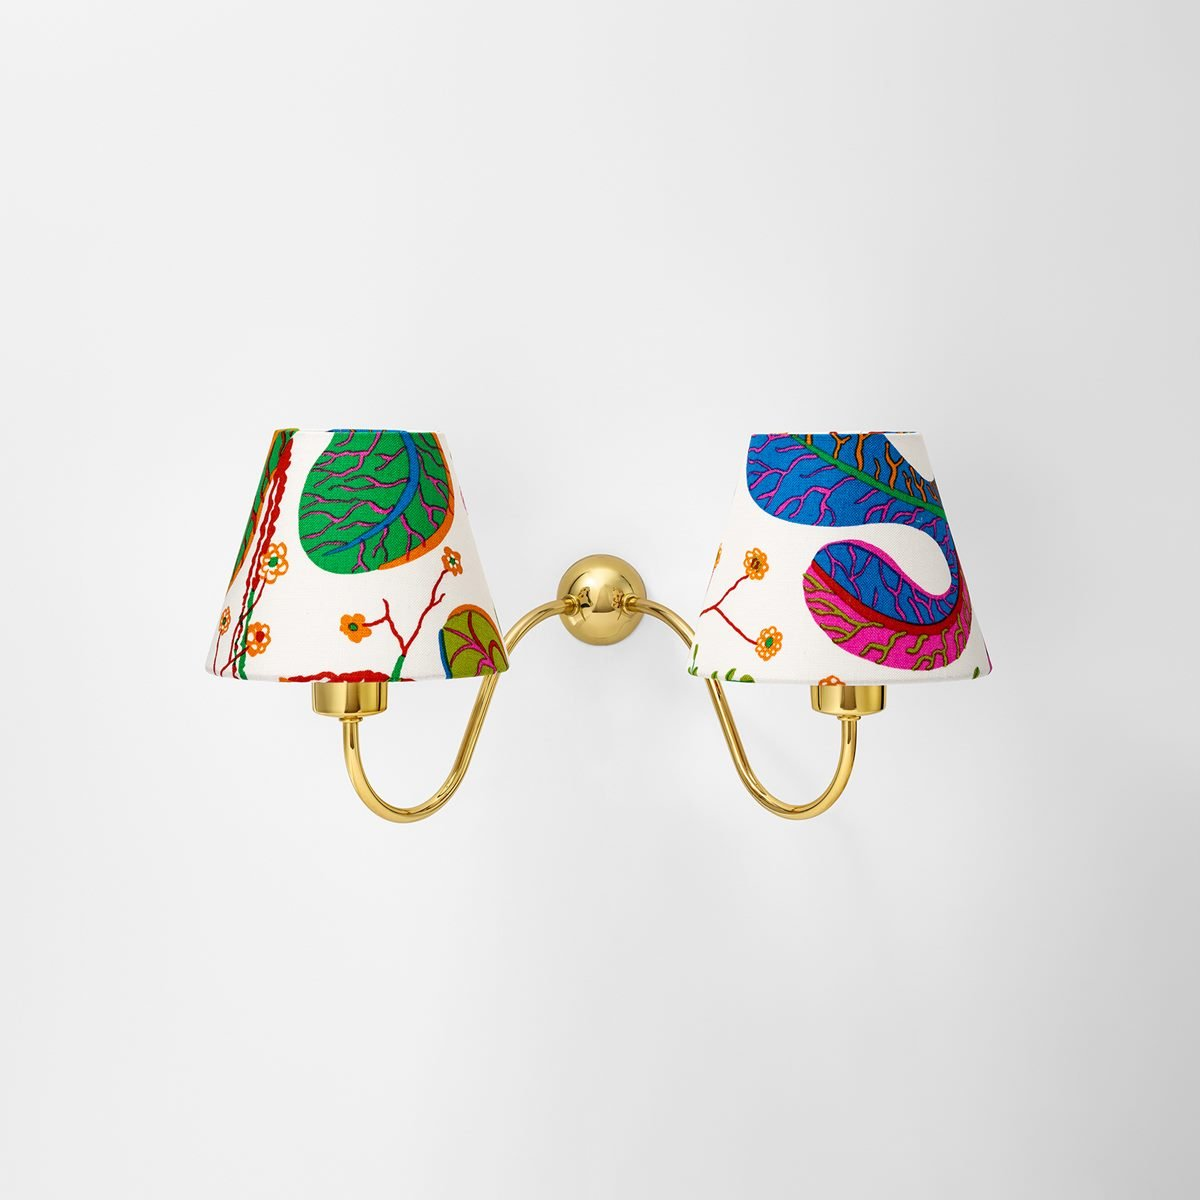 Wall Lamp 2335 - Brass, Direct Installation, Josef Frank | Svenskt Tenn